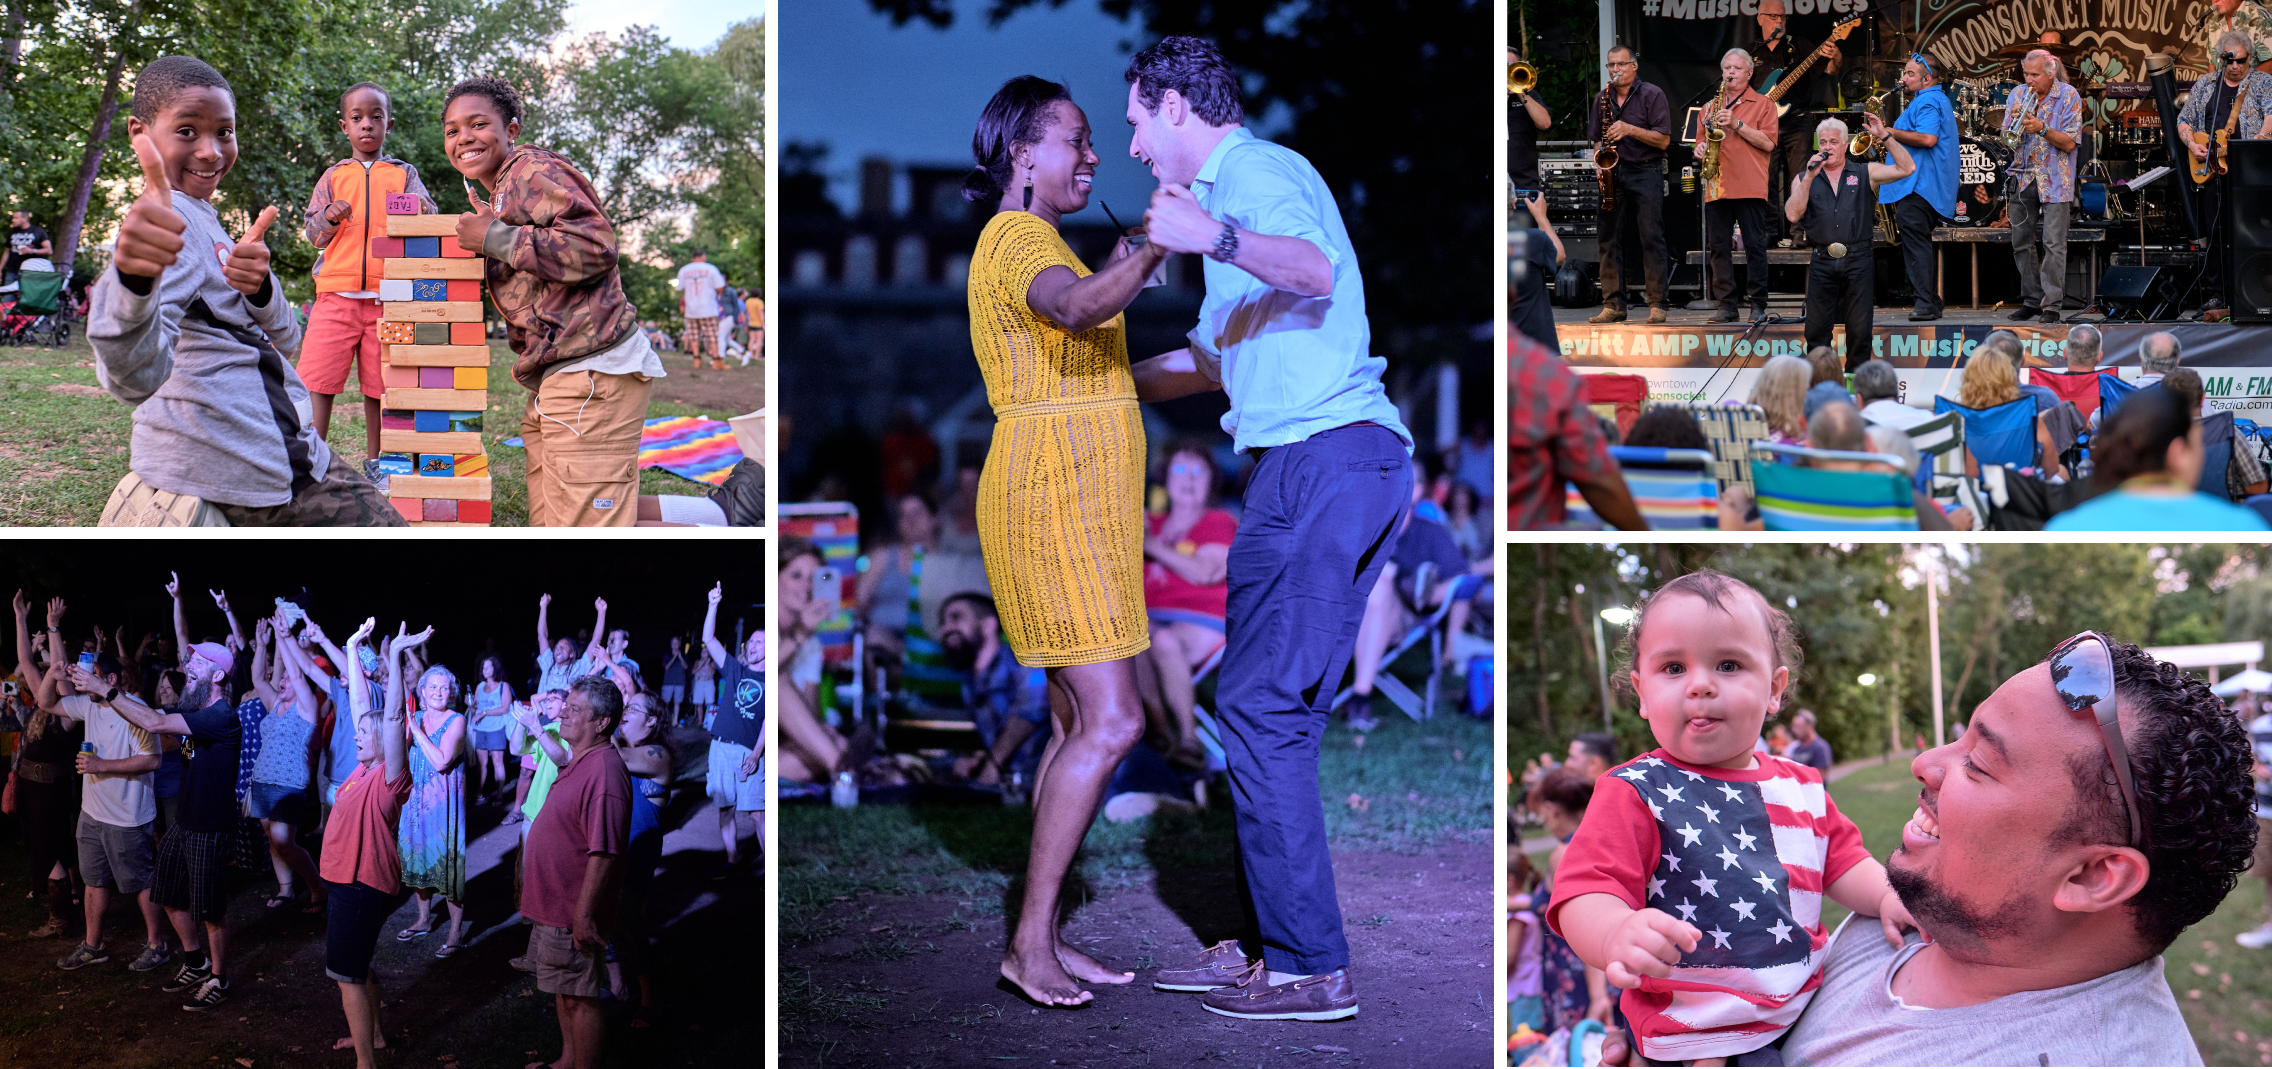 Joyous scenes from the 2018 and 2019 Levitt AMP Woonsocket Music Series